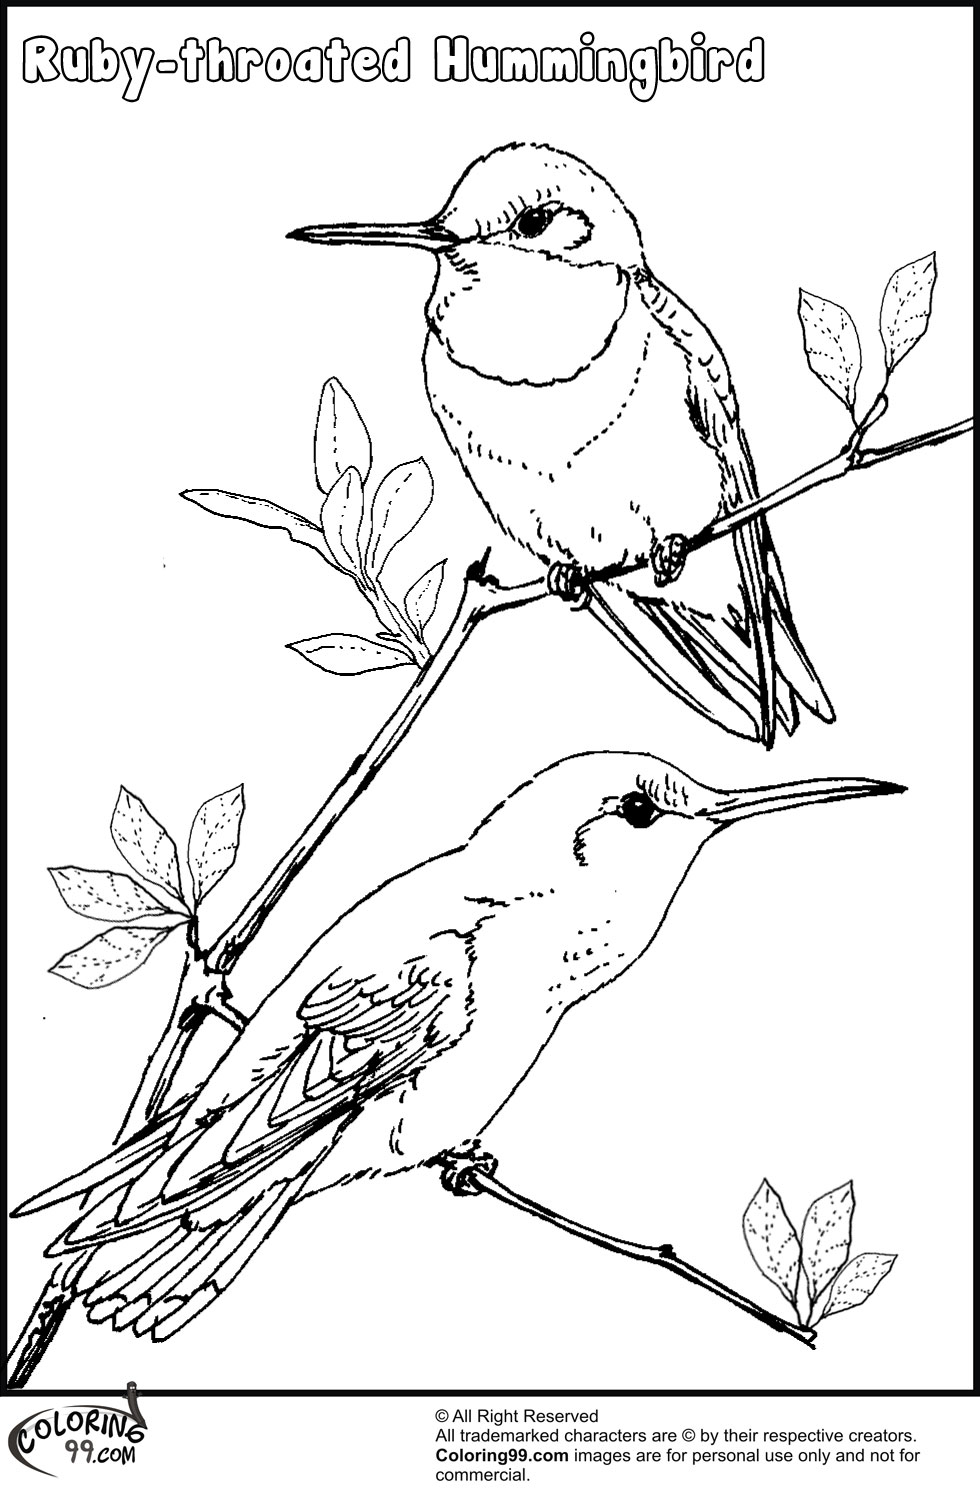 coloring pages of hummingbirds - hummingbird coloring pages team colors